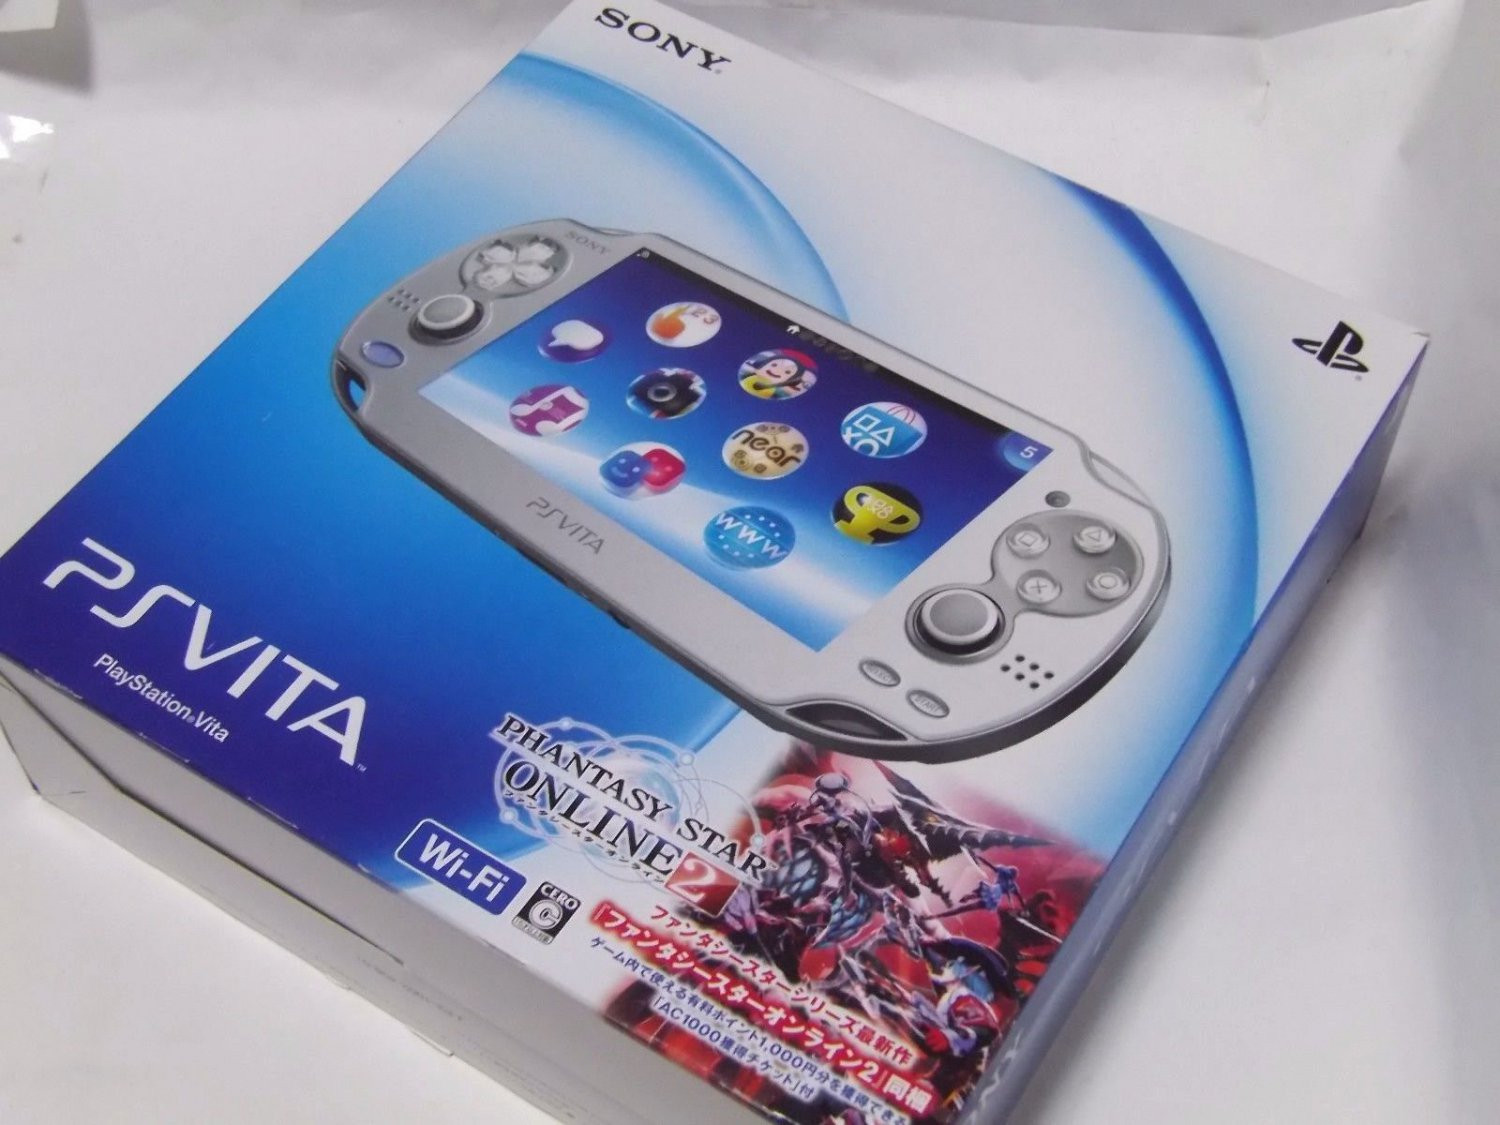 Sony ps vita console system pch 1000 ice silver wi fi for Vita craft factory outlet